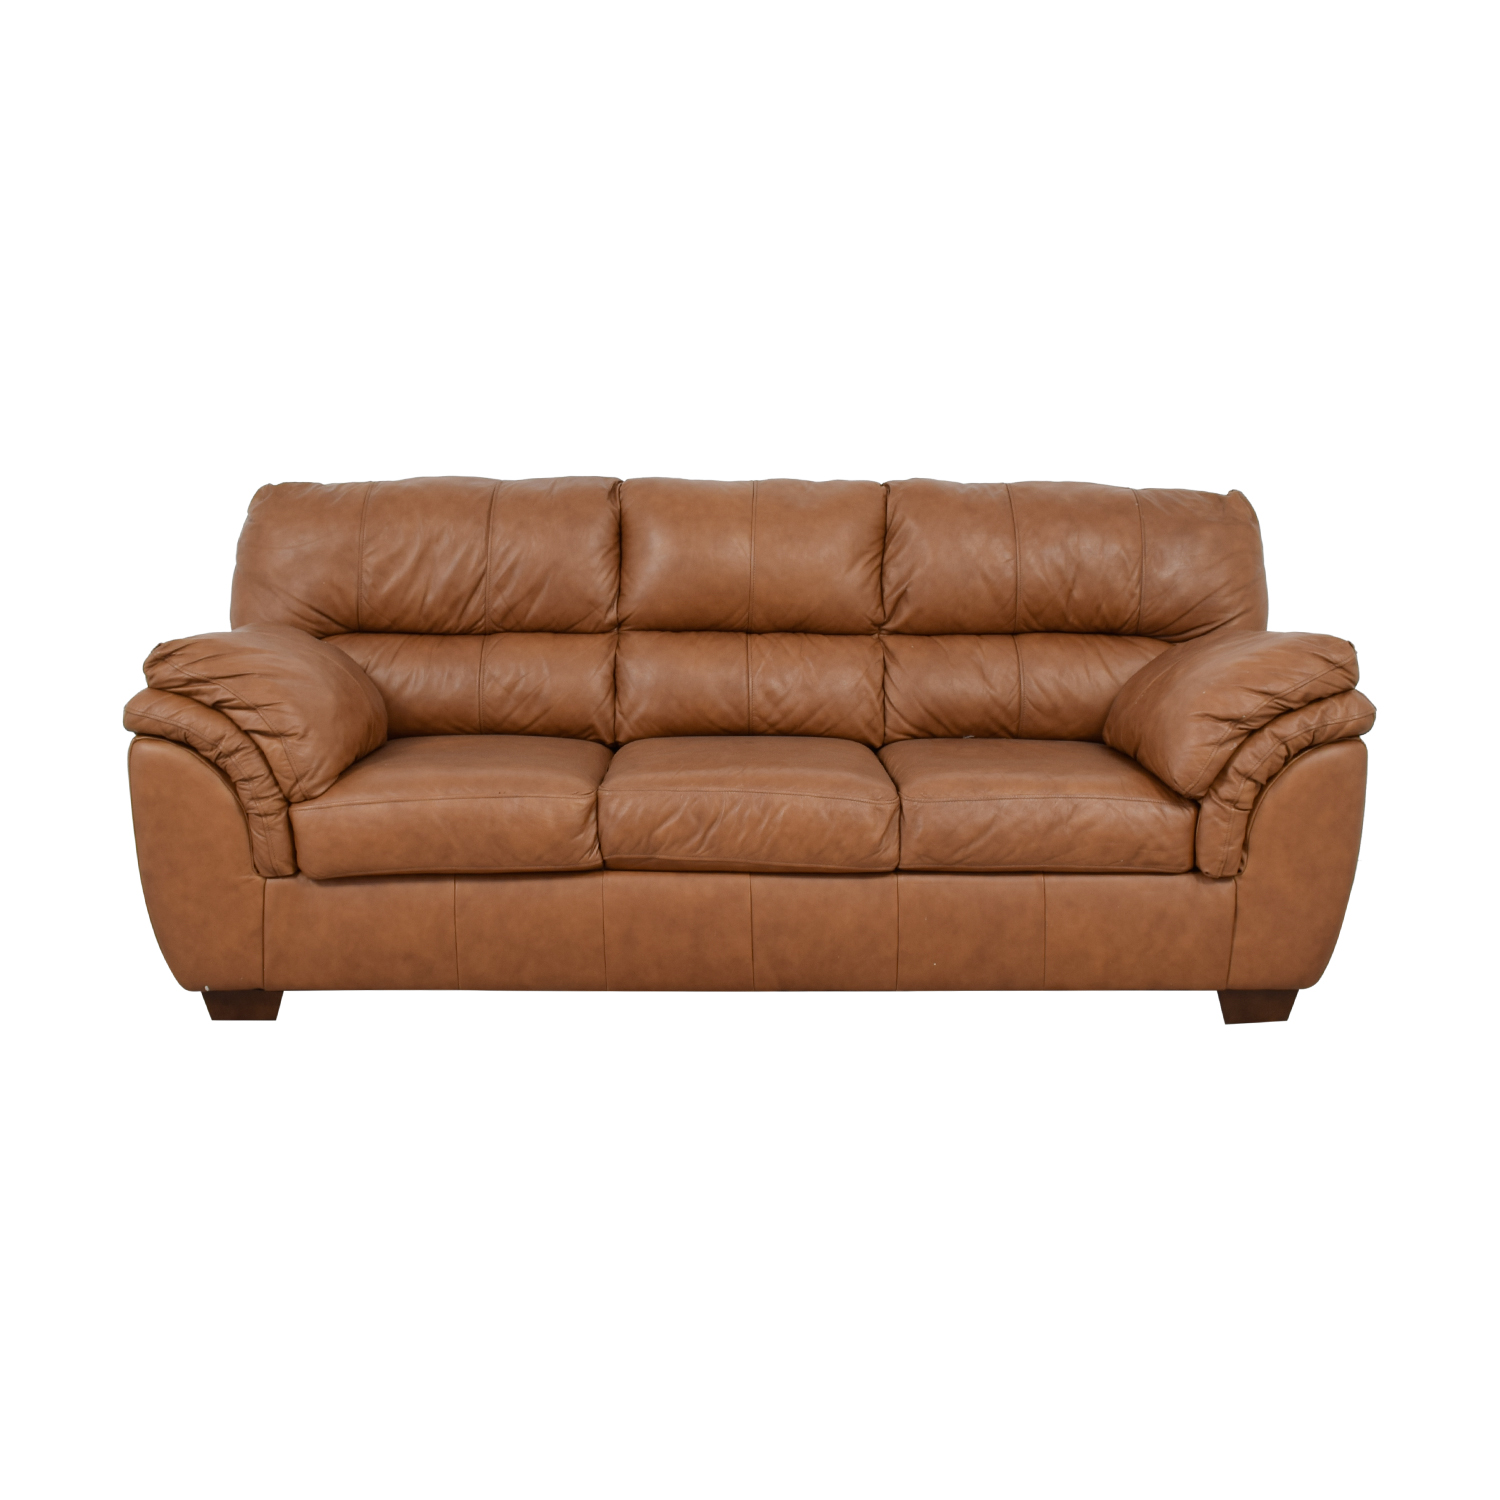 buy Ashley Furniture Bladen Cognac Leather Three-Cushion Sofa Ashley Furniture Classic Sofas